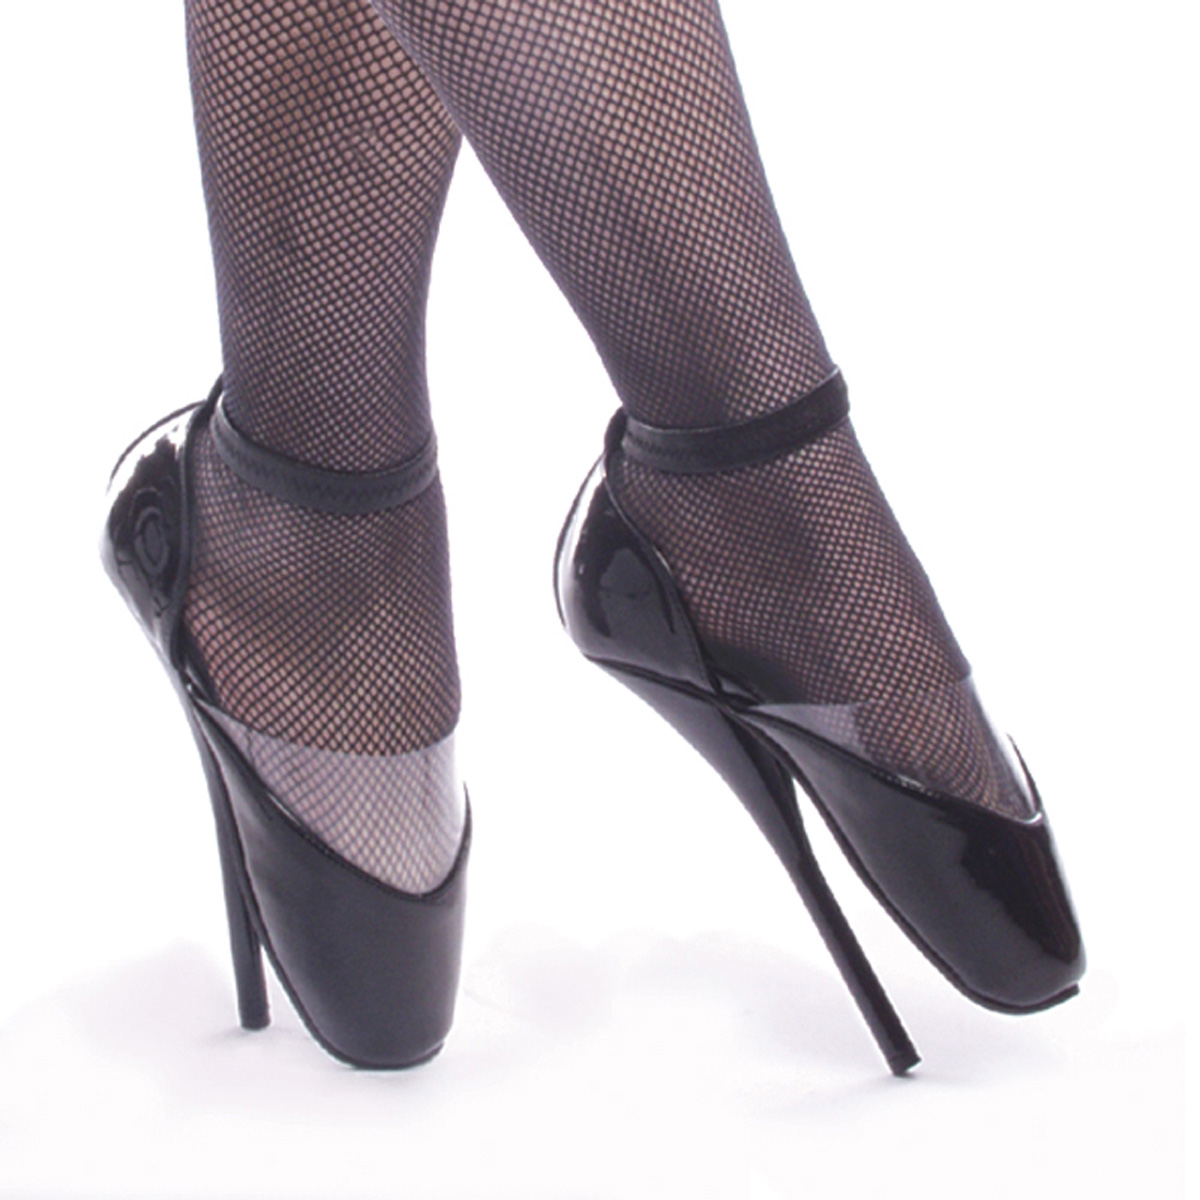 "DEVIOUS BALLET-12 7"" Heel Shoes/Blk Pat"